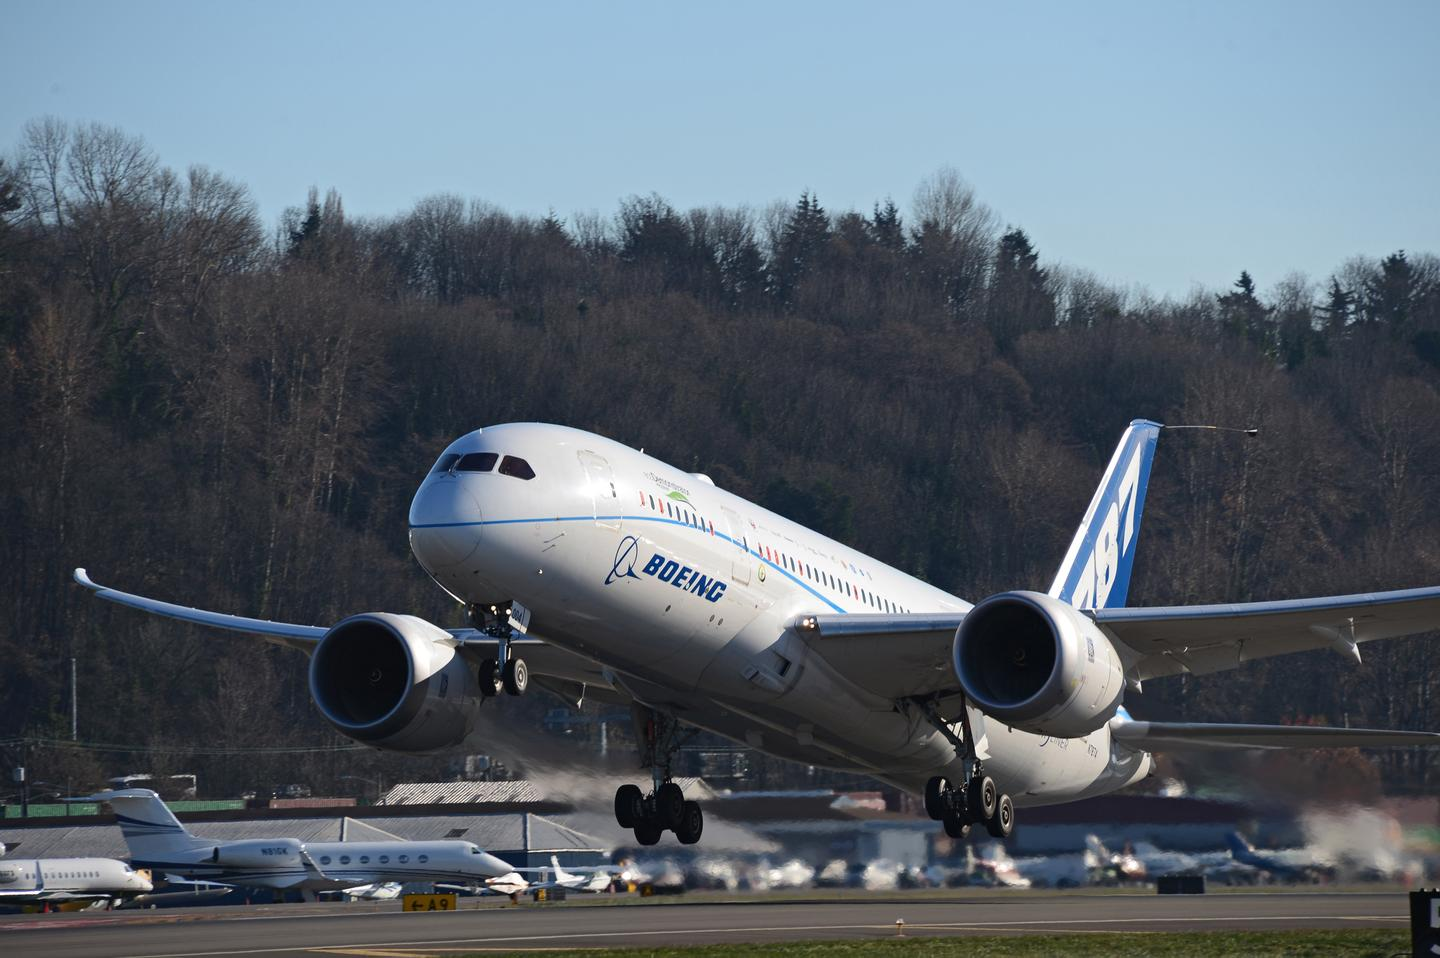 The ecoDemonstrator 787 lifts off yesterday at Boeing Field in Seattle (Photo: Boeing)